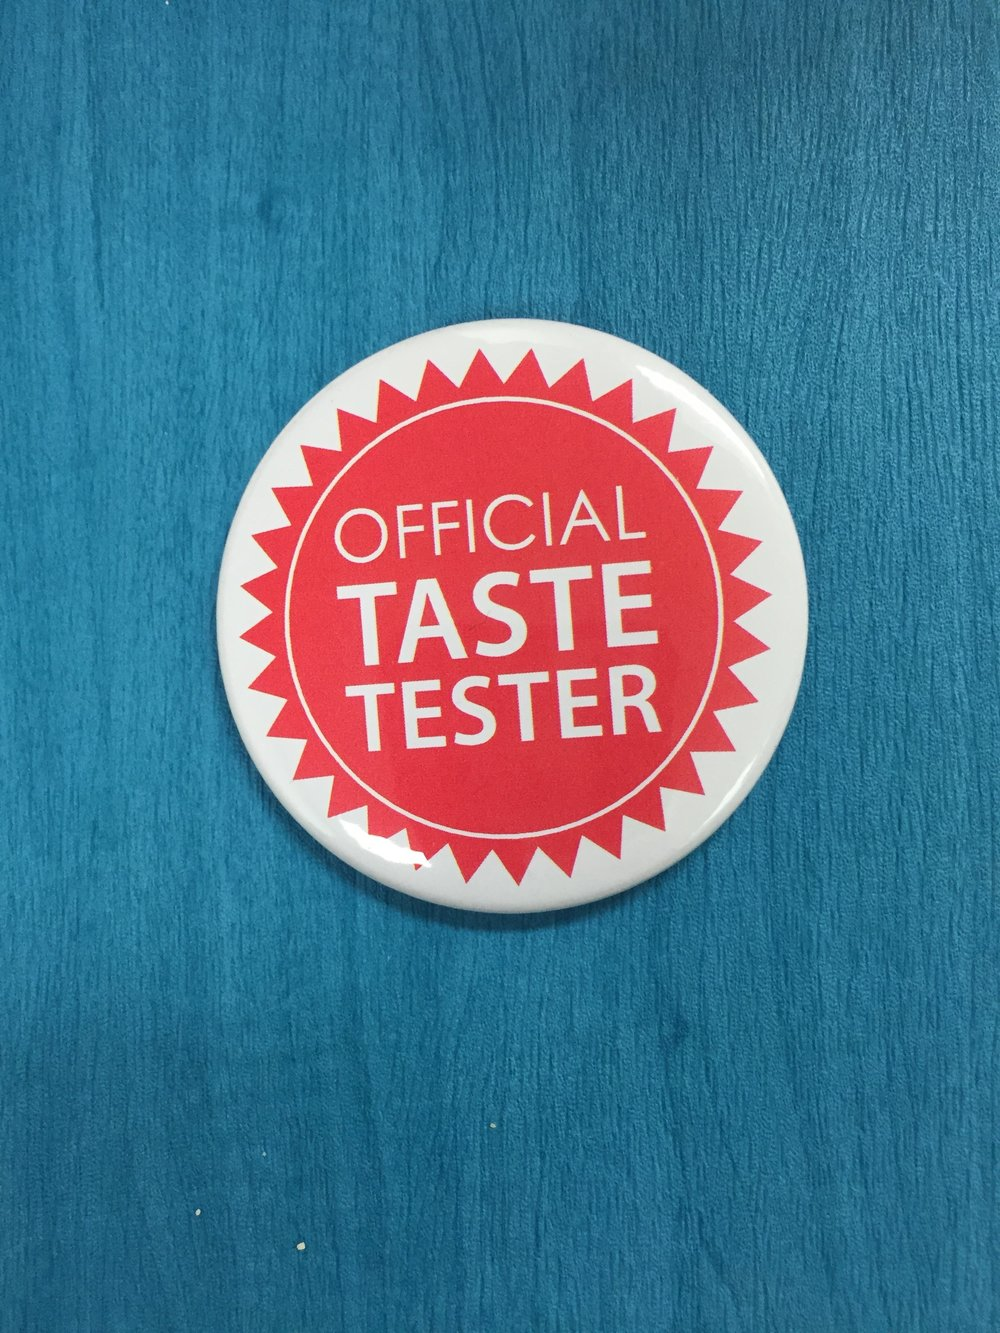 Students were Official Taste Testers.